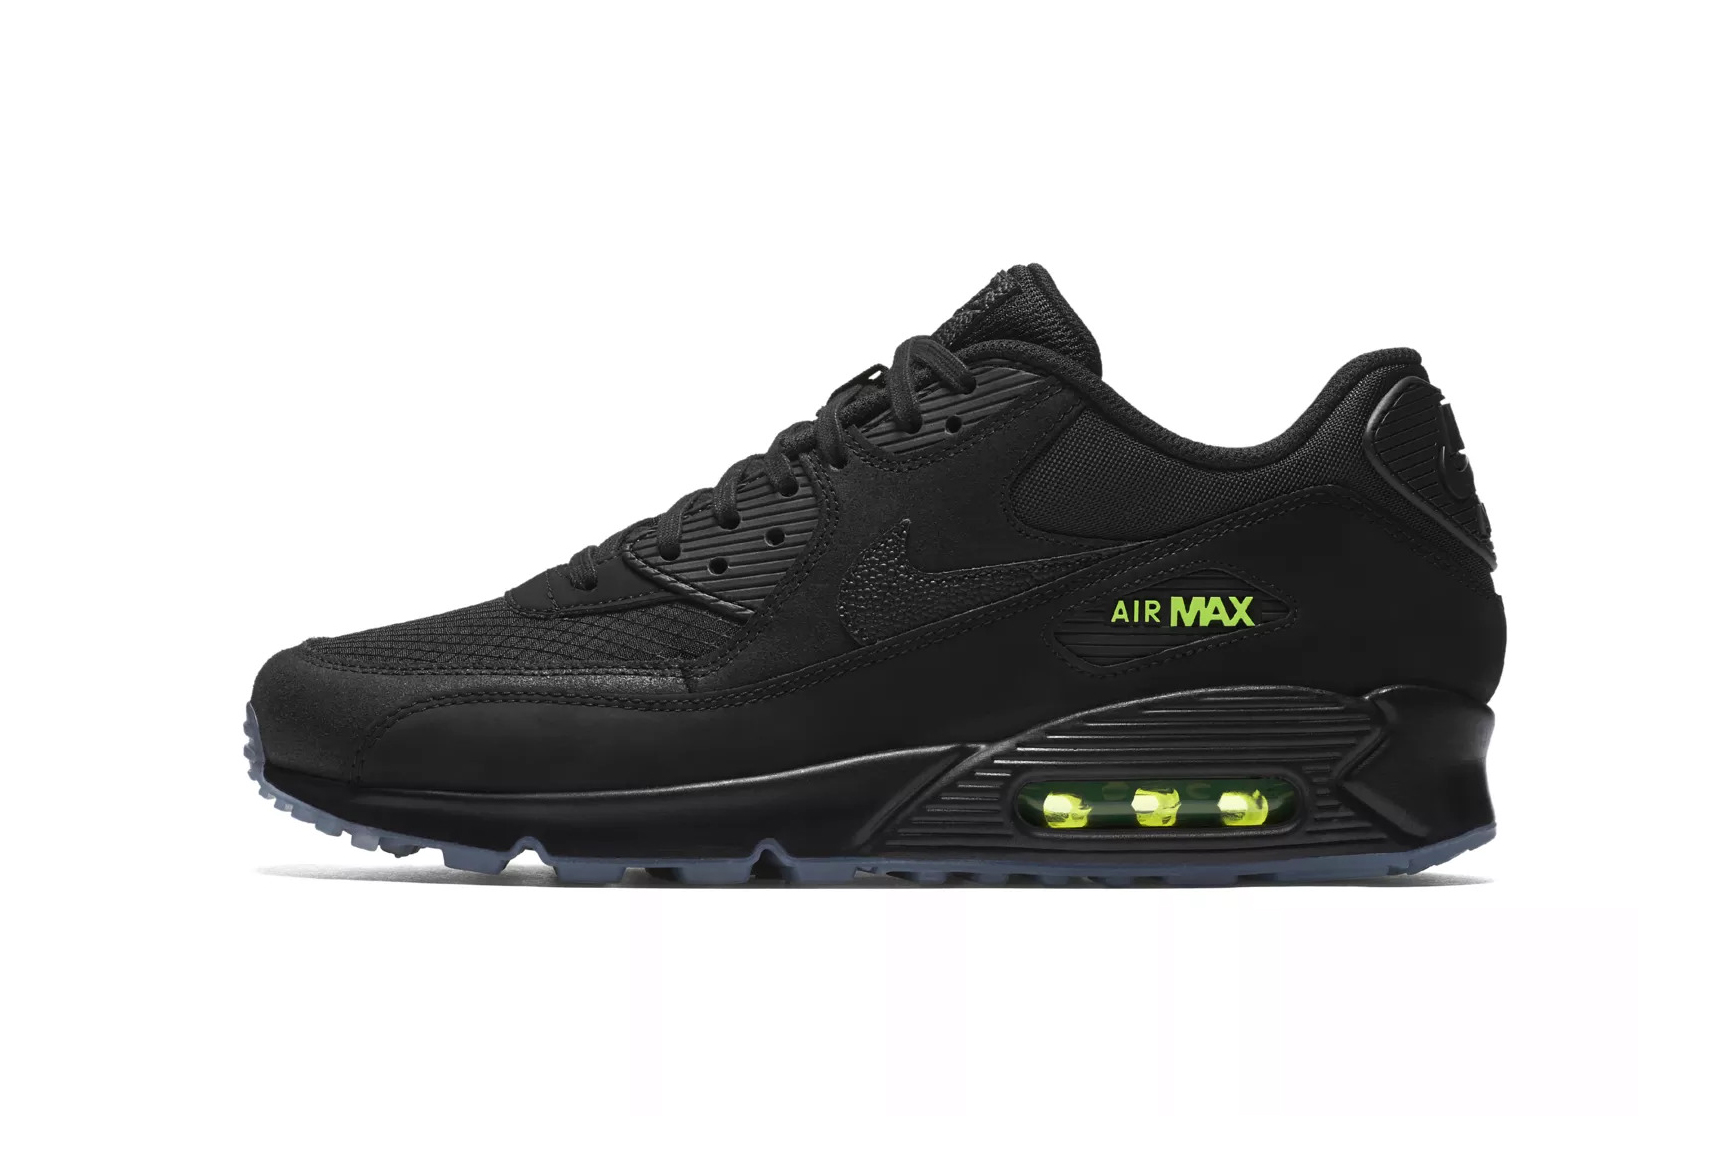 san francisco 5f8b5 5bf33 Nike Air Max 90